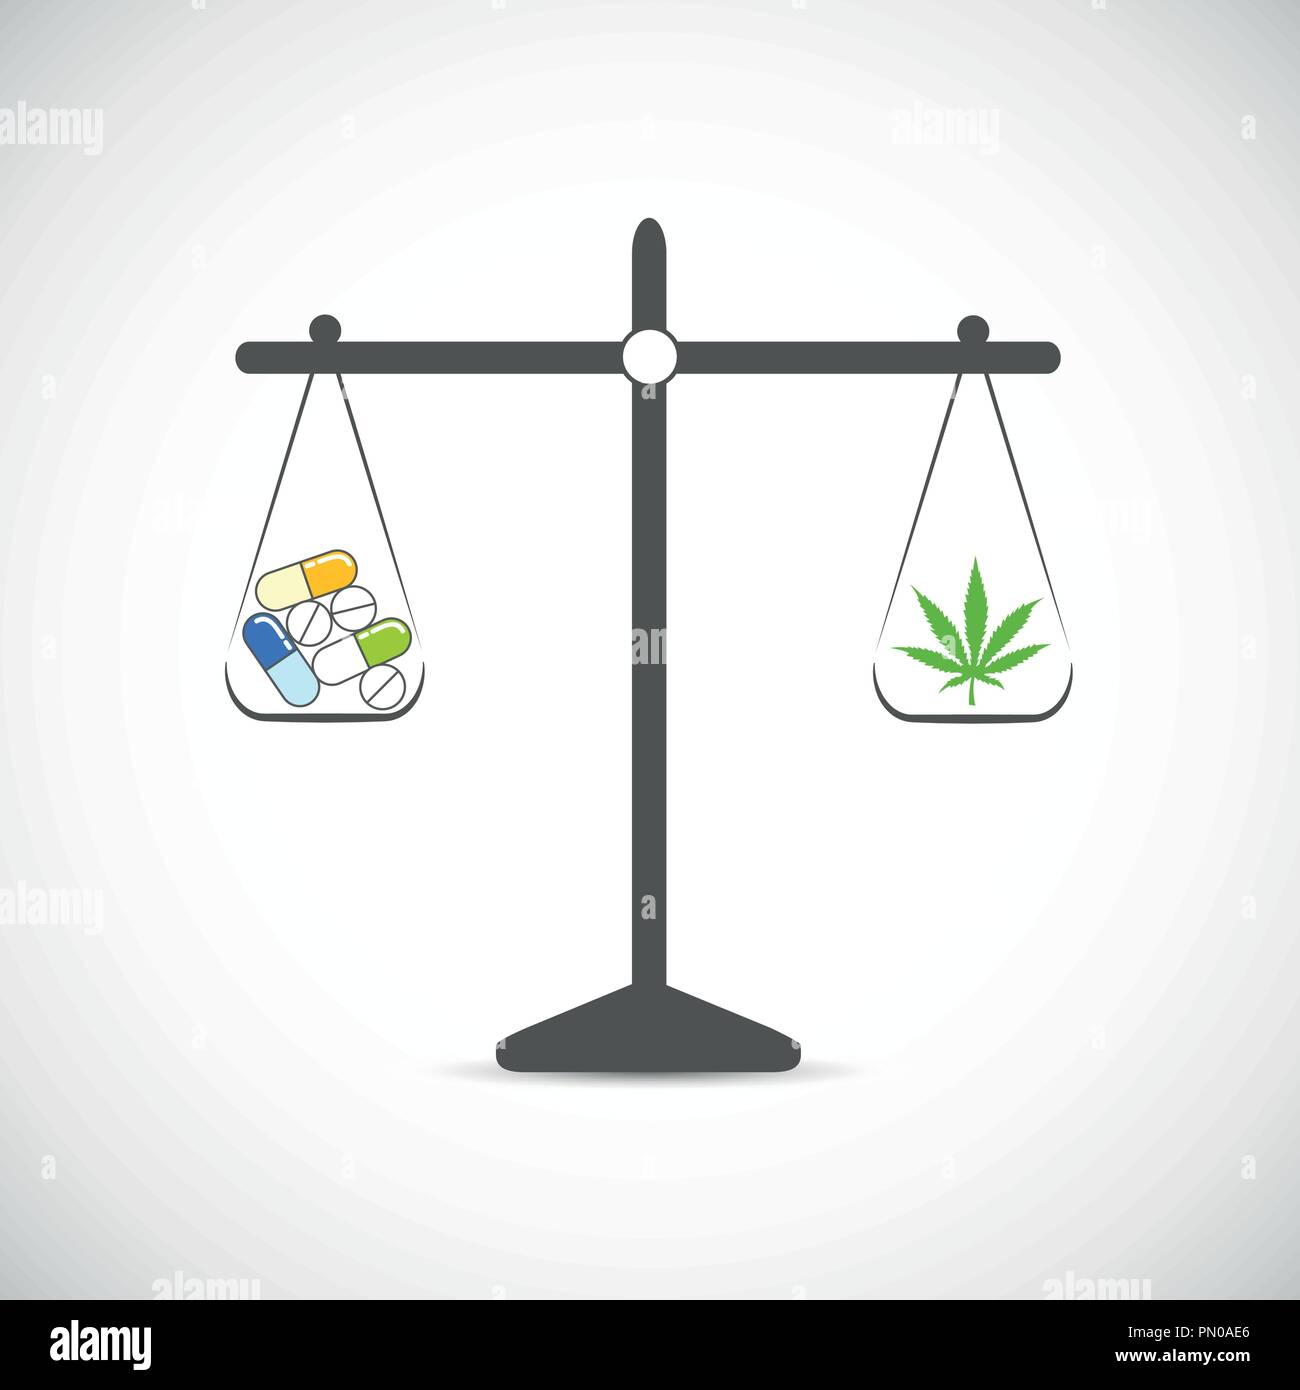 libra cannabis or chemical tablets medicine decision vector illustration - Stock Image